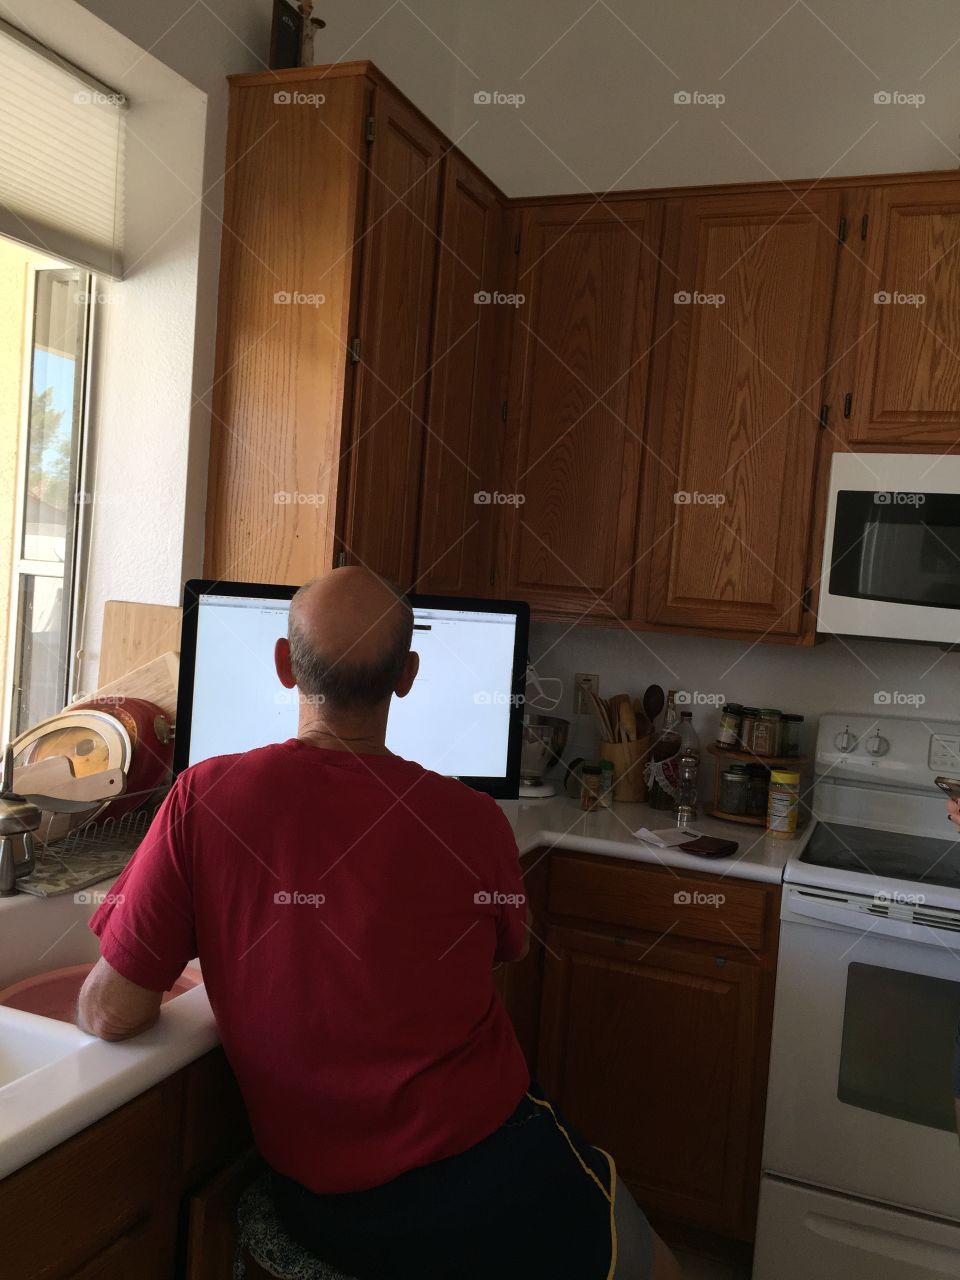 Using computer in the kitchen